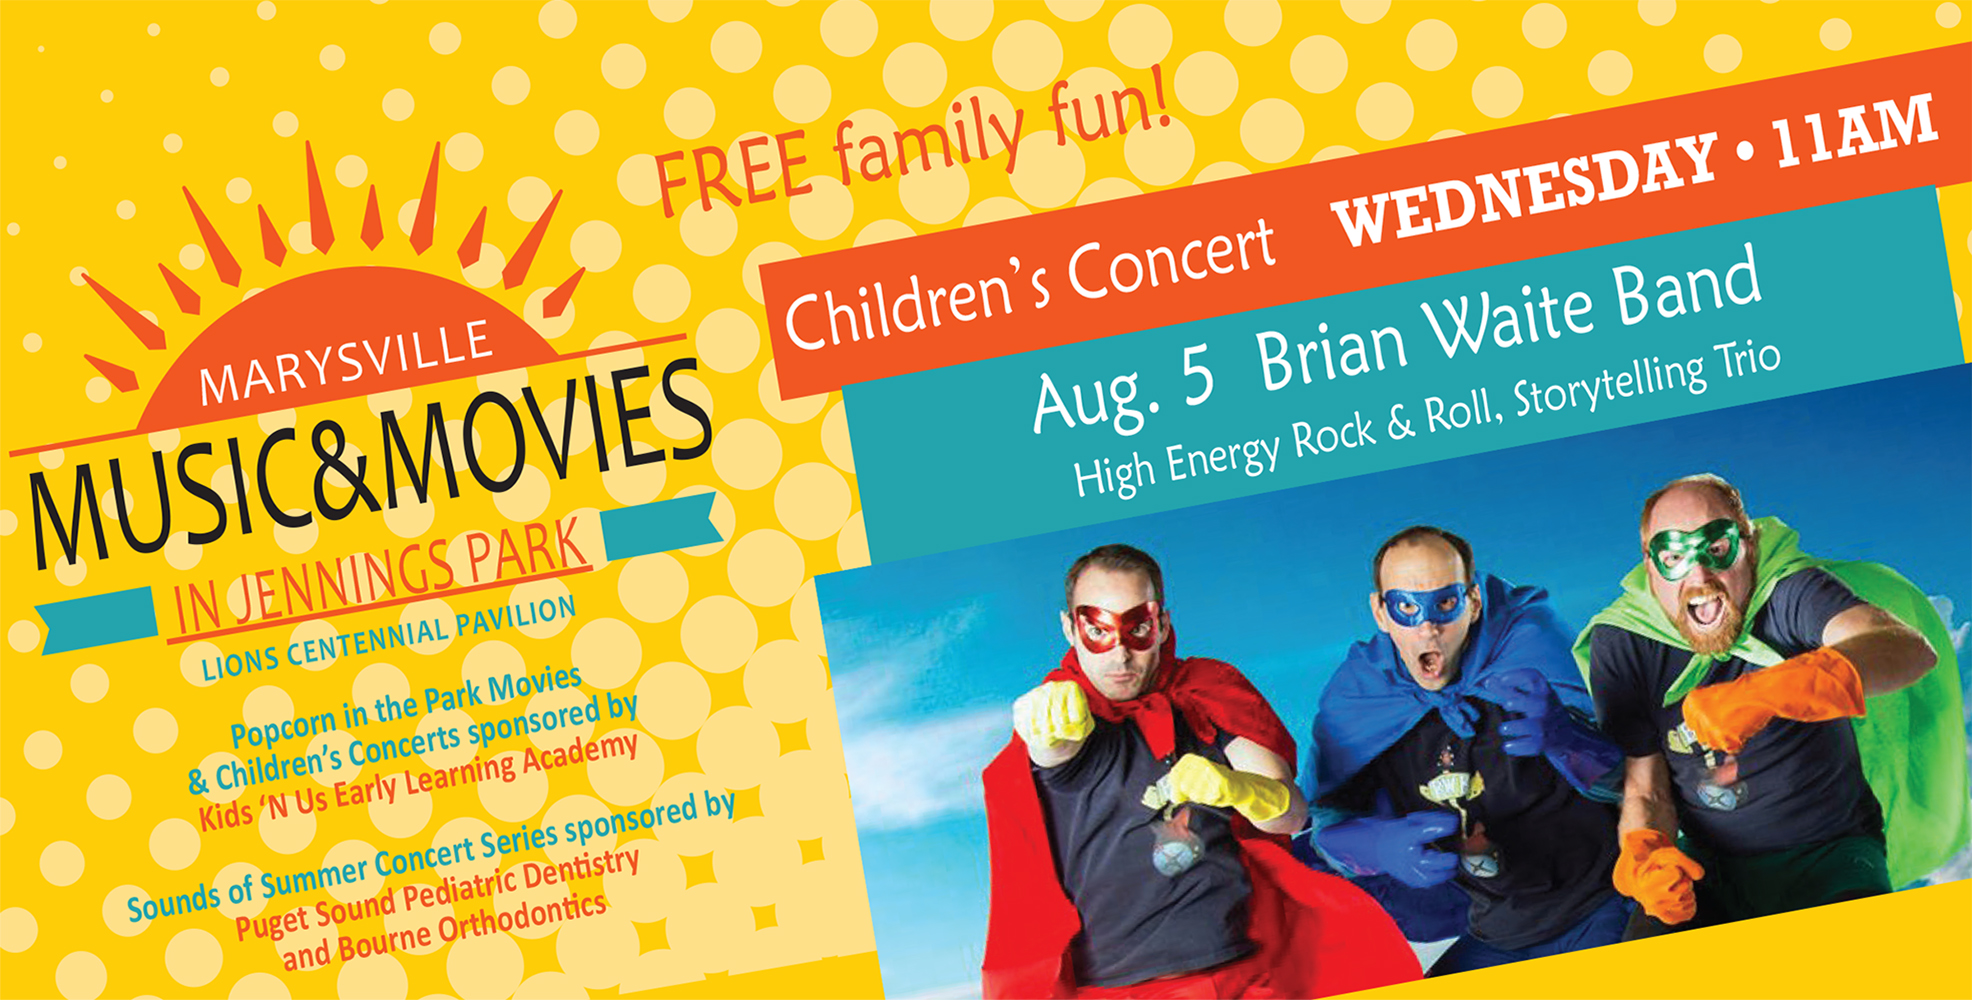 Summer kids' concert: The Brian Waite Band